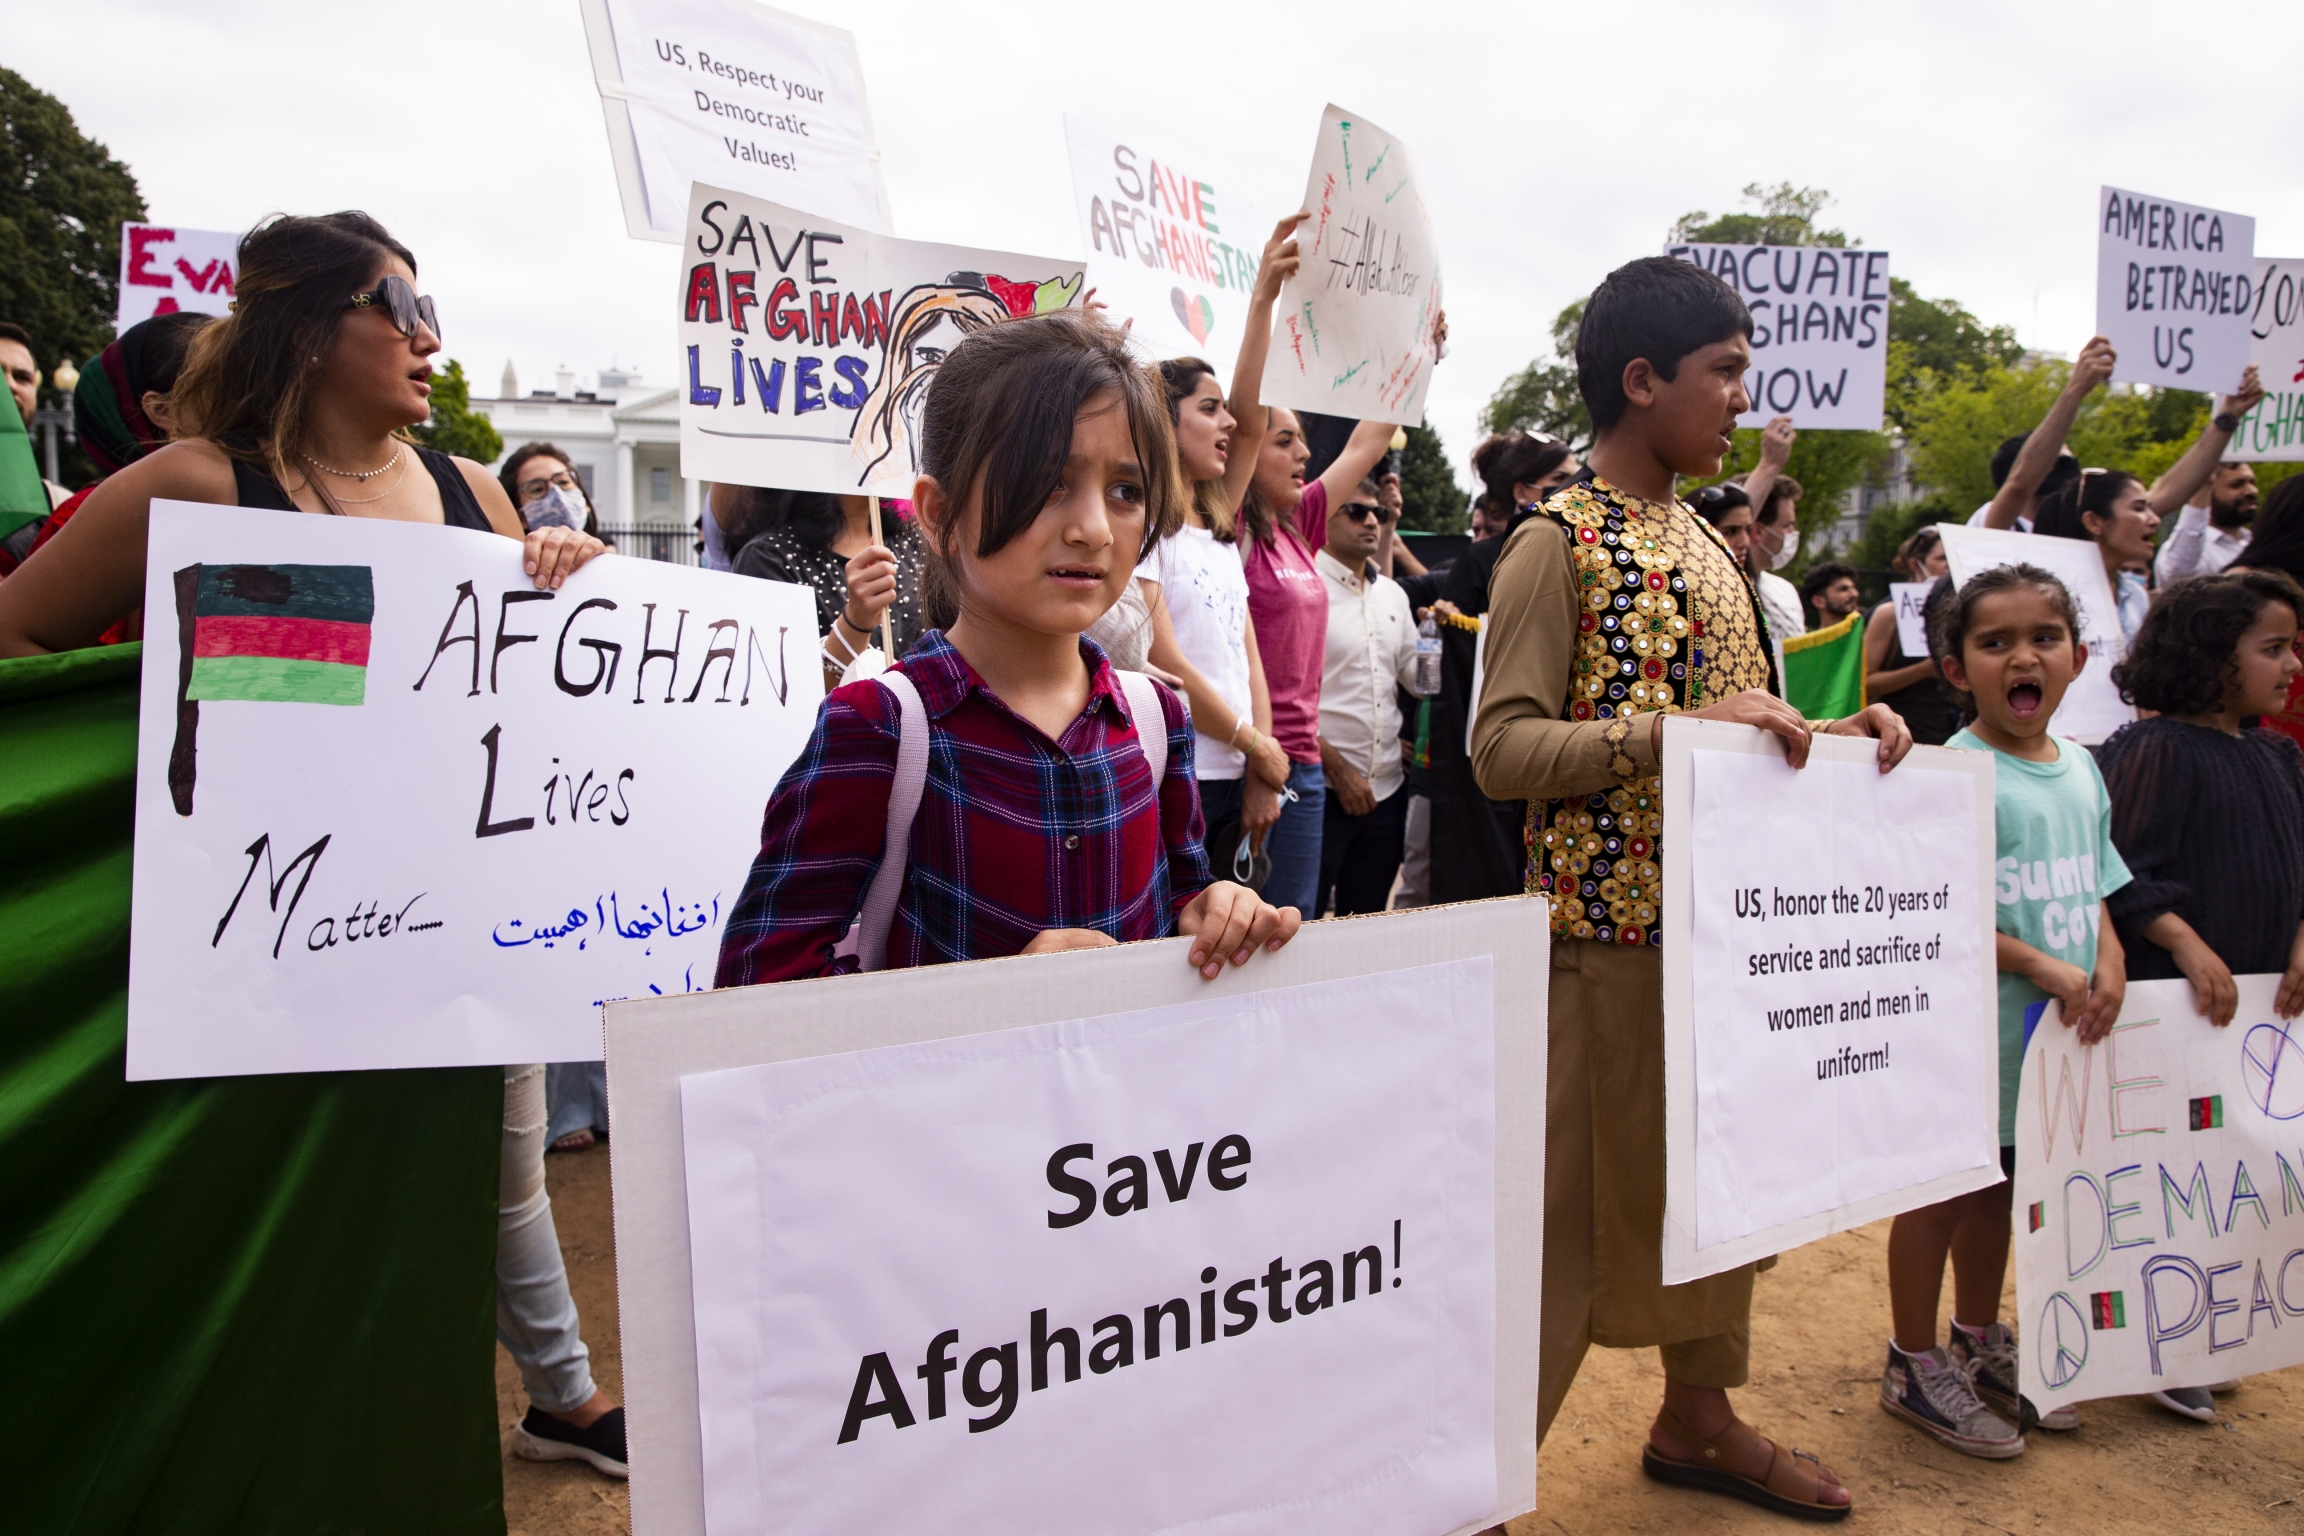 """Women holding signs saying """"save Afghan lives"""" and """"Afghan Lives Matter"""" at a protest, with the White House in the background"""